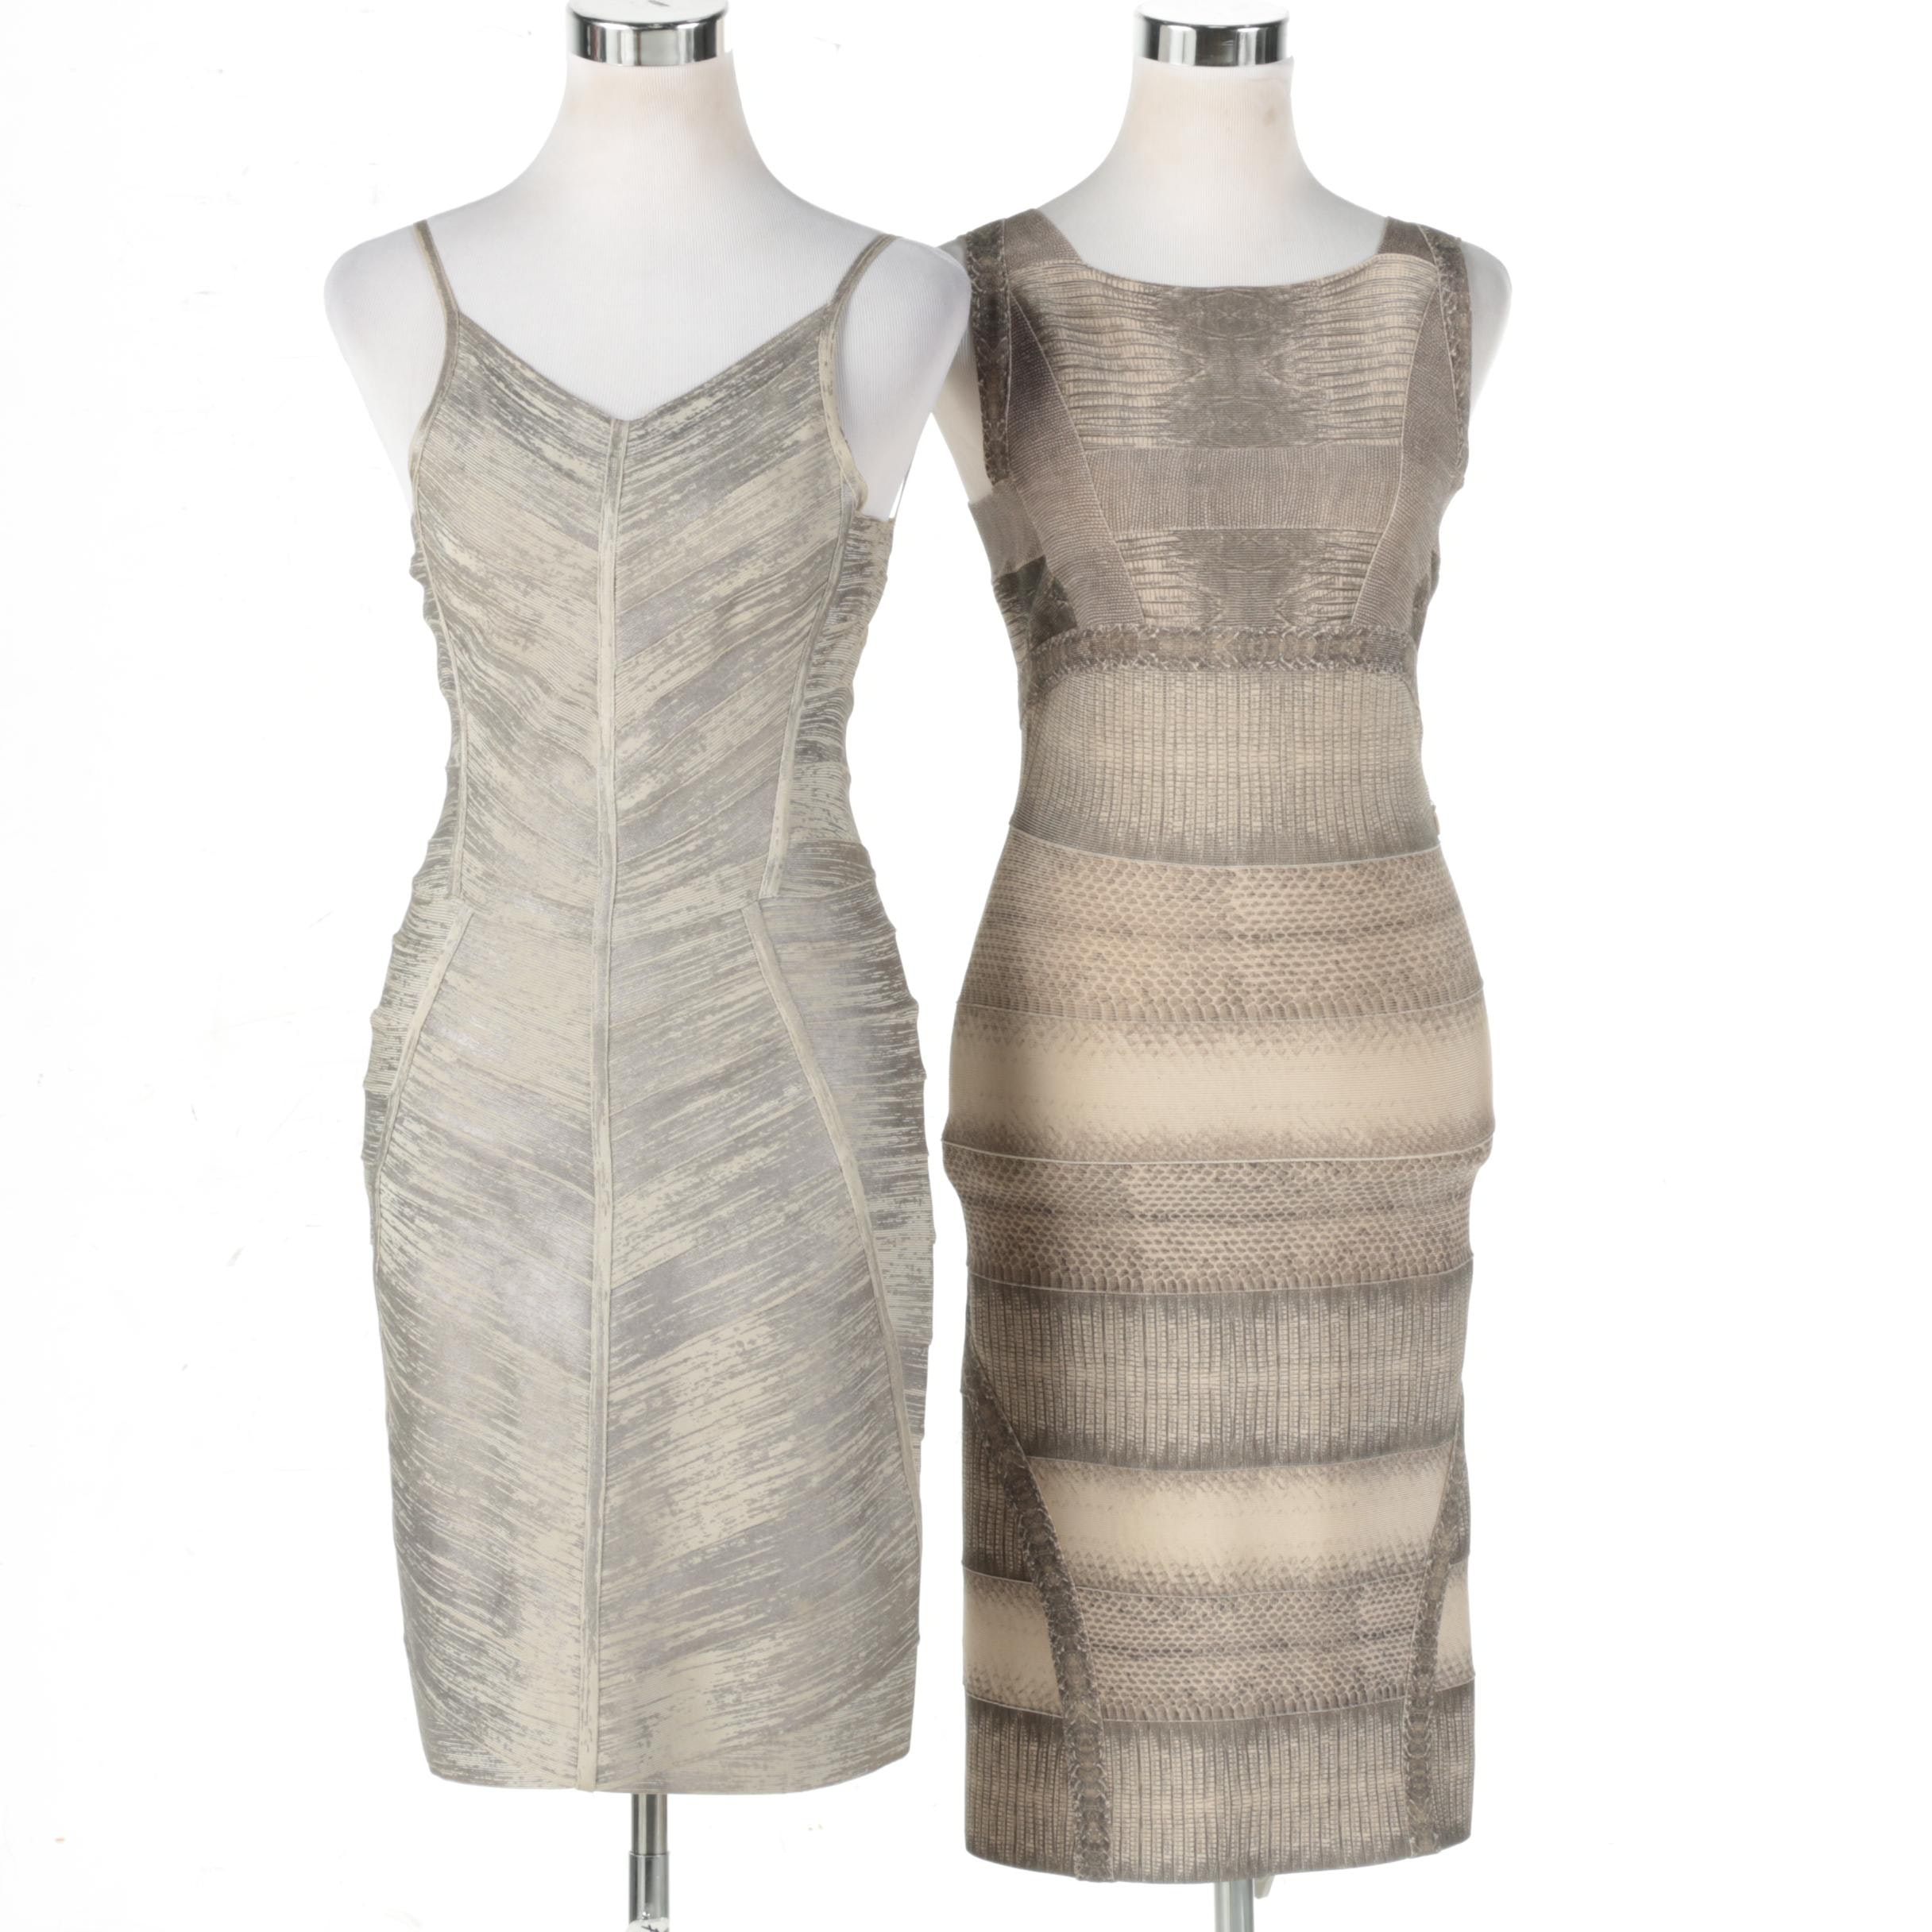 Pair of Women's Hervé Léger Designer Sleeveless Dresses